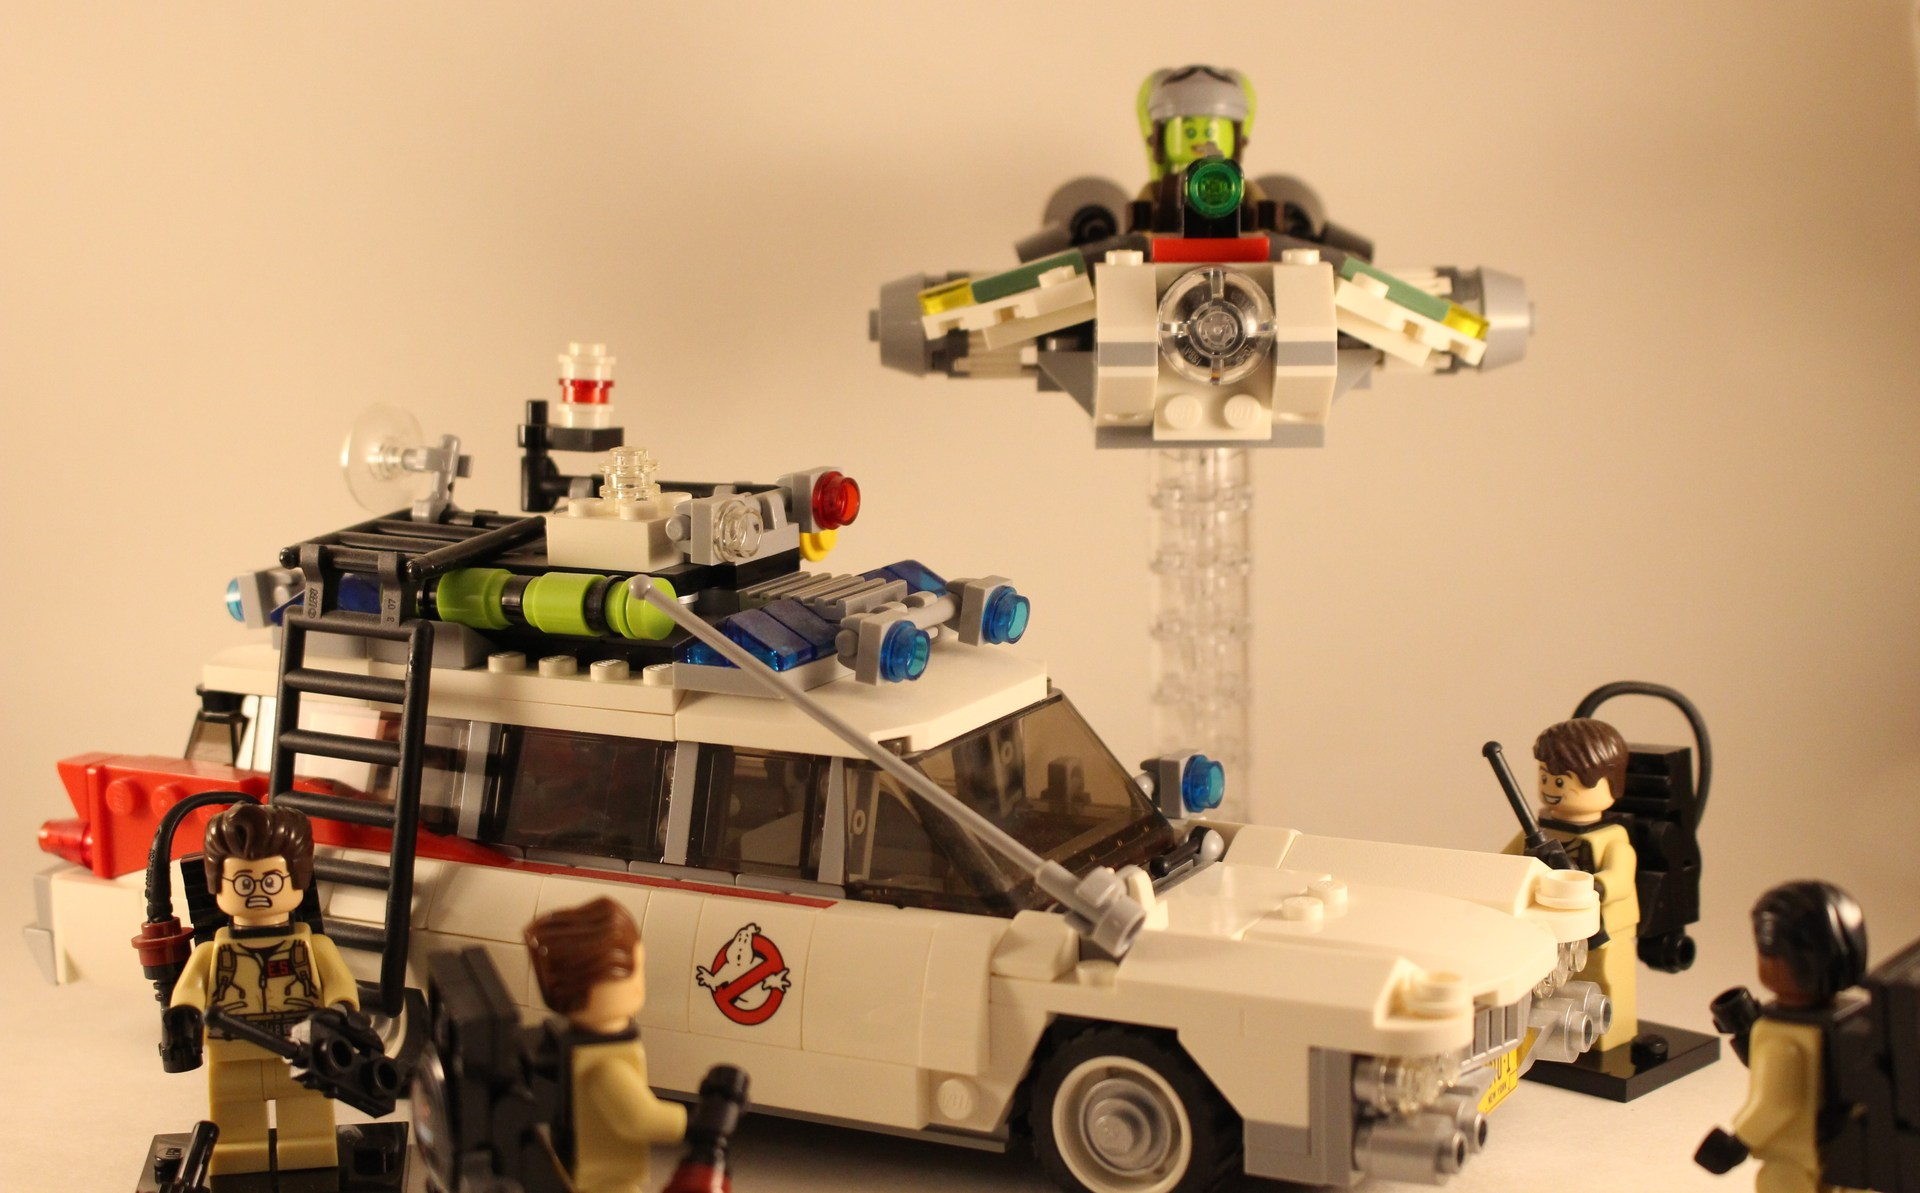 LEGO Ghostbusters vs Star Wars Ghost